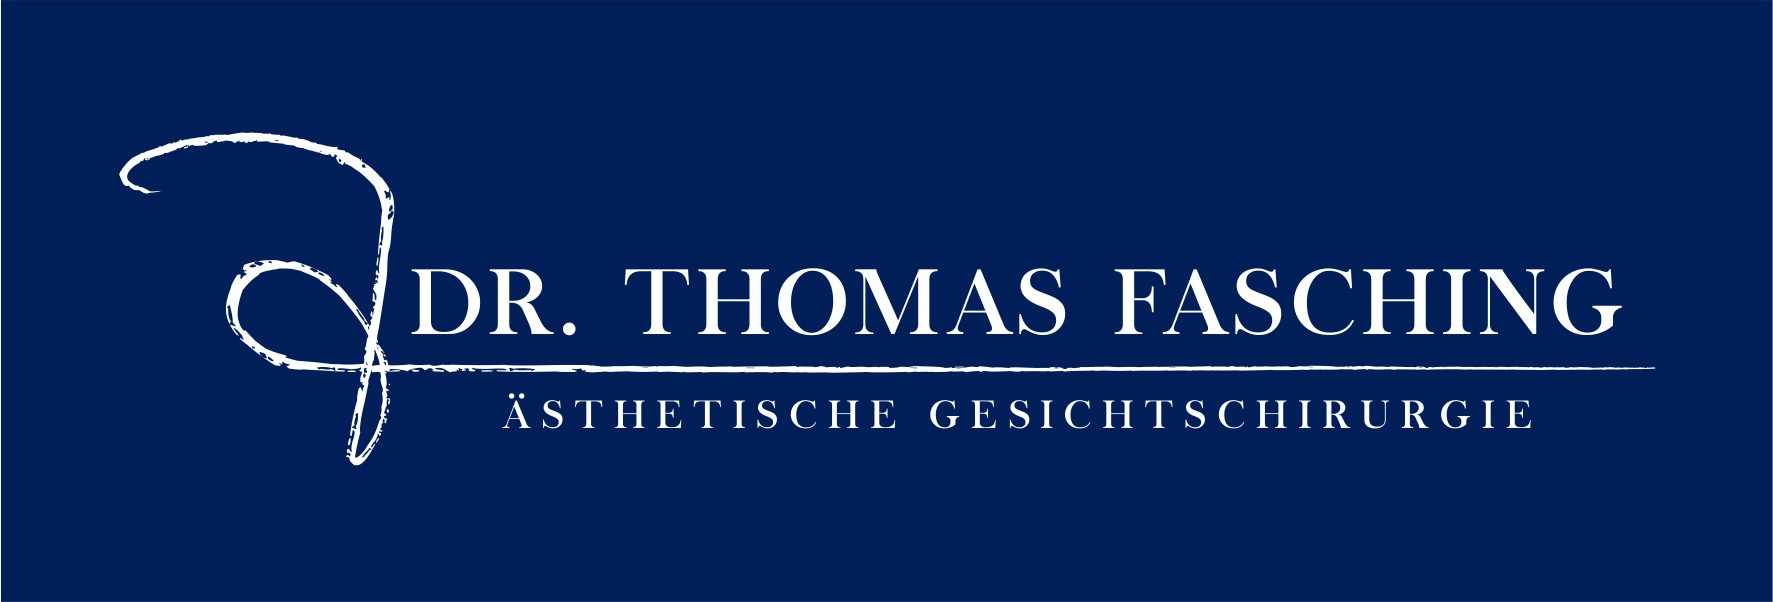 Logo an CI for Dr. Thomas Fasching, Specialist in esthetic Rhinoplasty